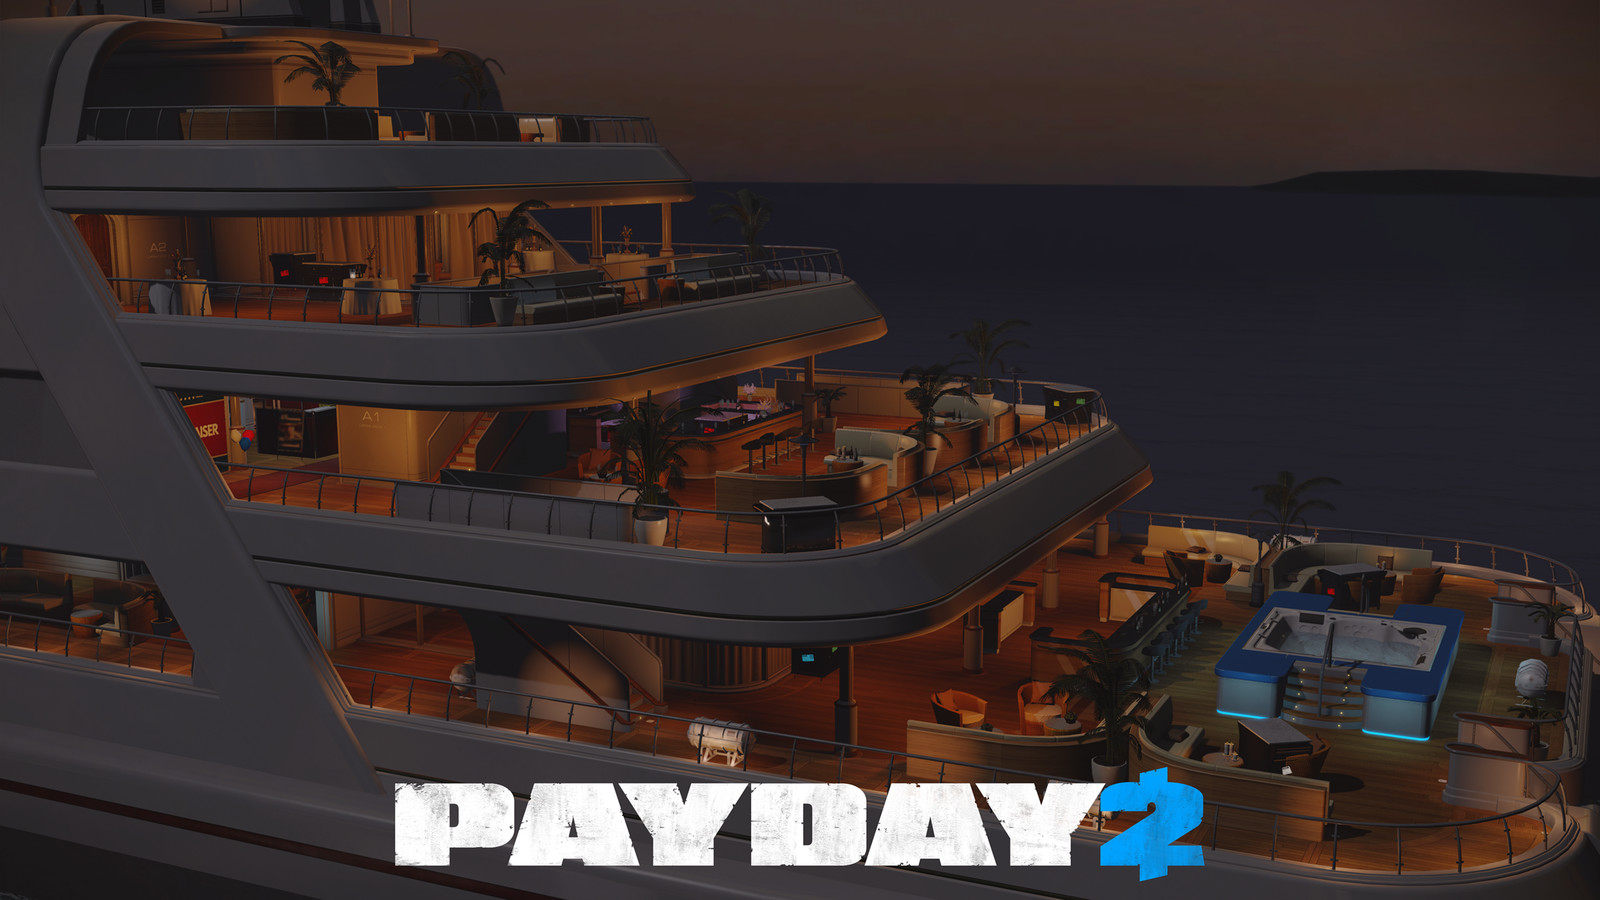 Payday 2: Yacht DLC